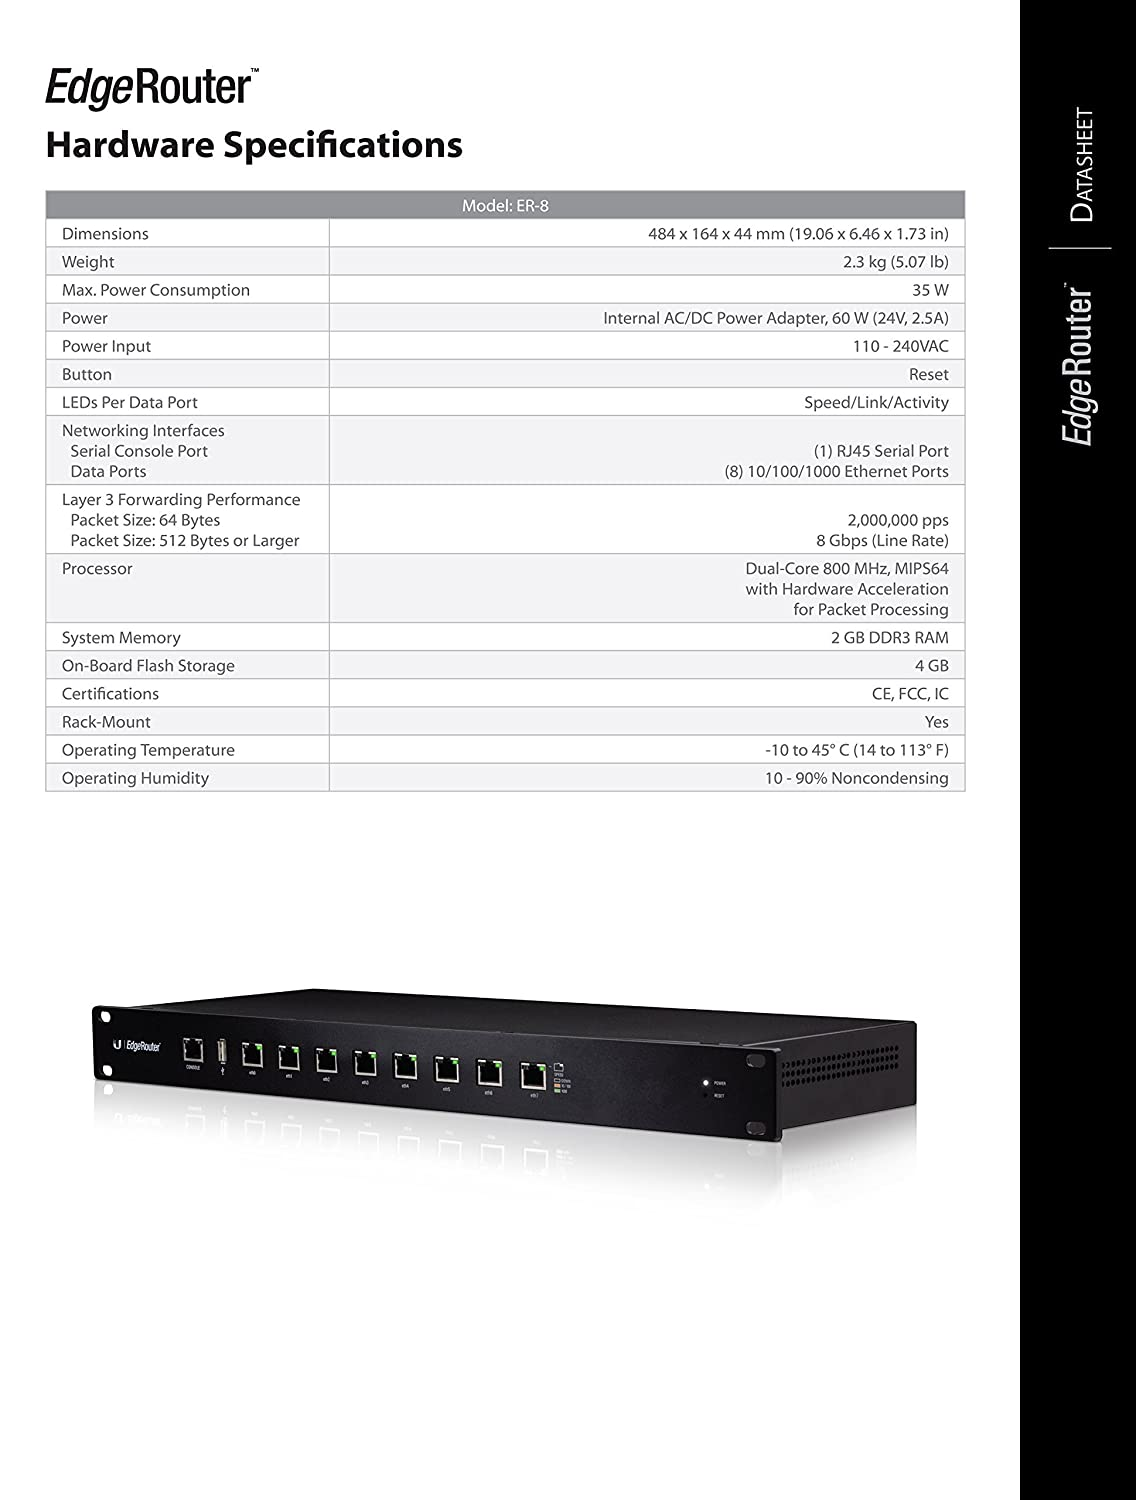 Ubiquiti Networks ER-8 Edgerouter 8 Port Router